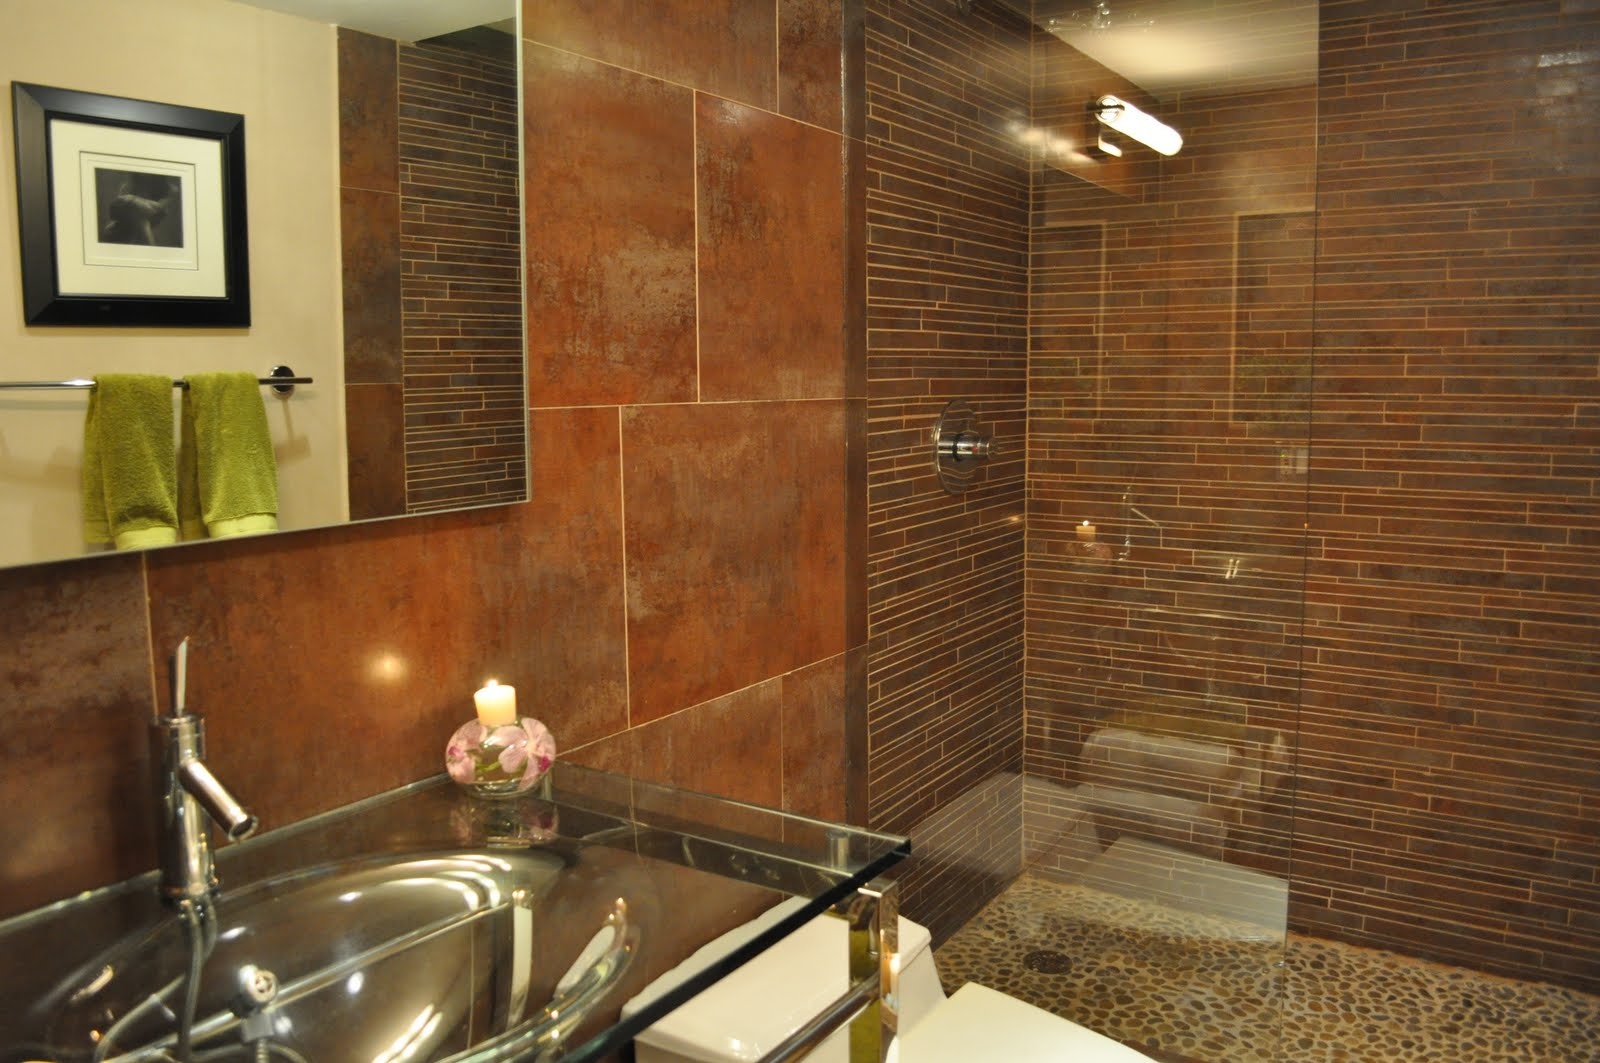 Small Bamboo Bathroom Tiles Ideas